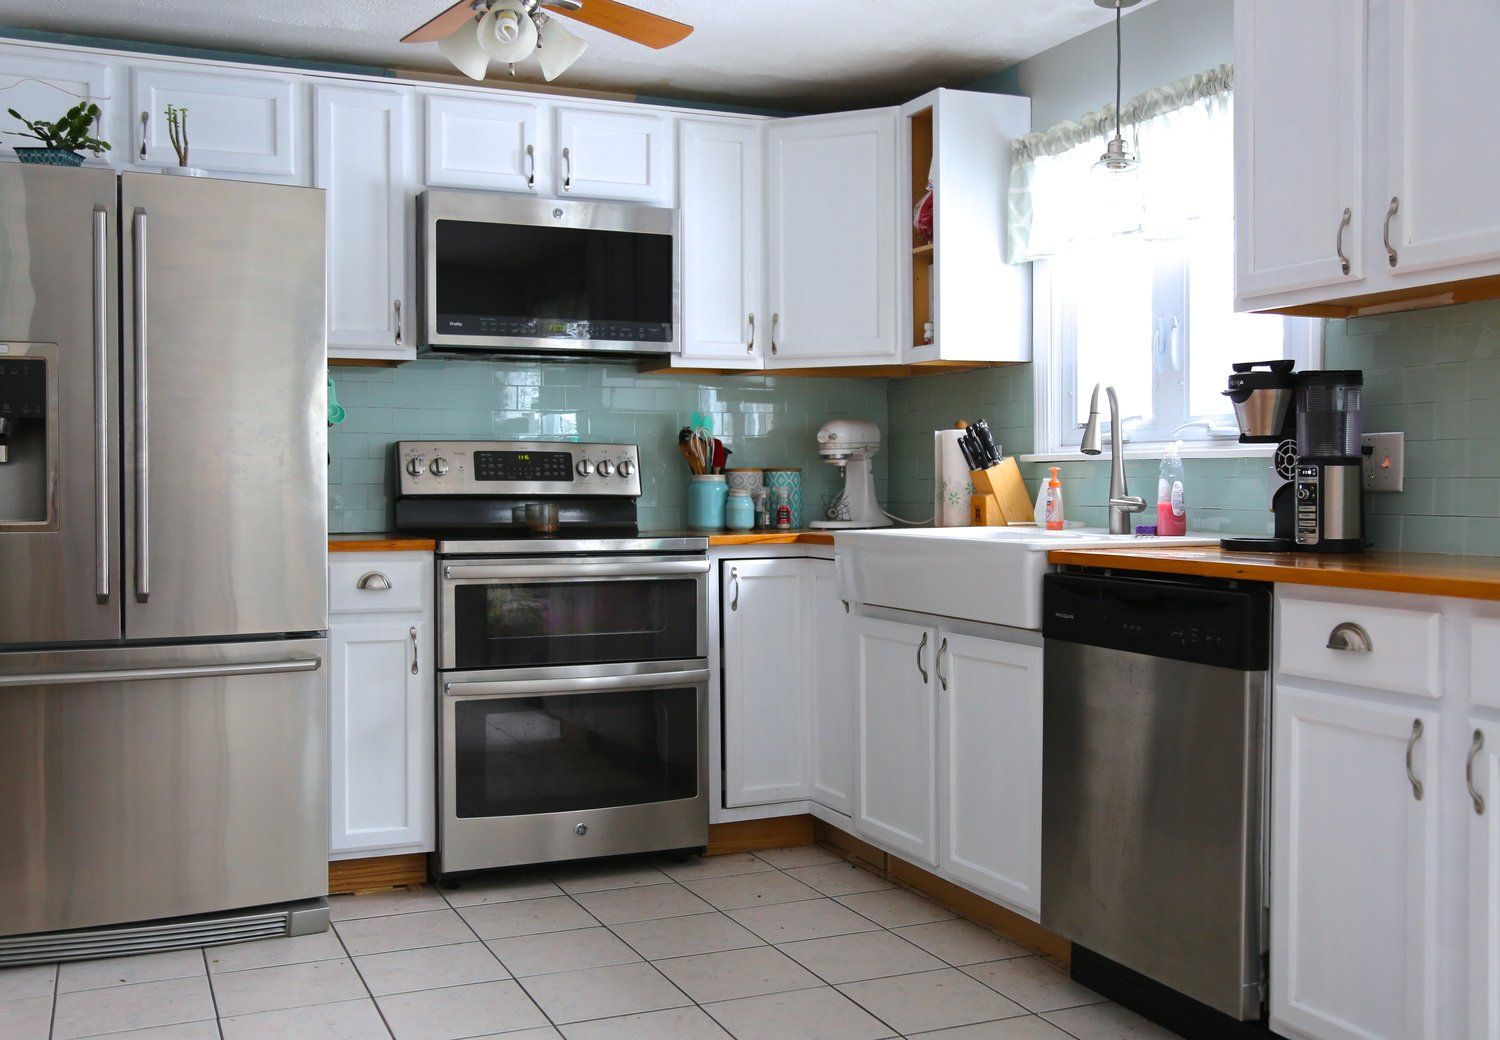 How to paint oak kitchen cabinets | Painting oak cabinets ...